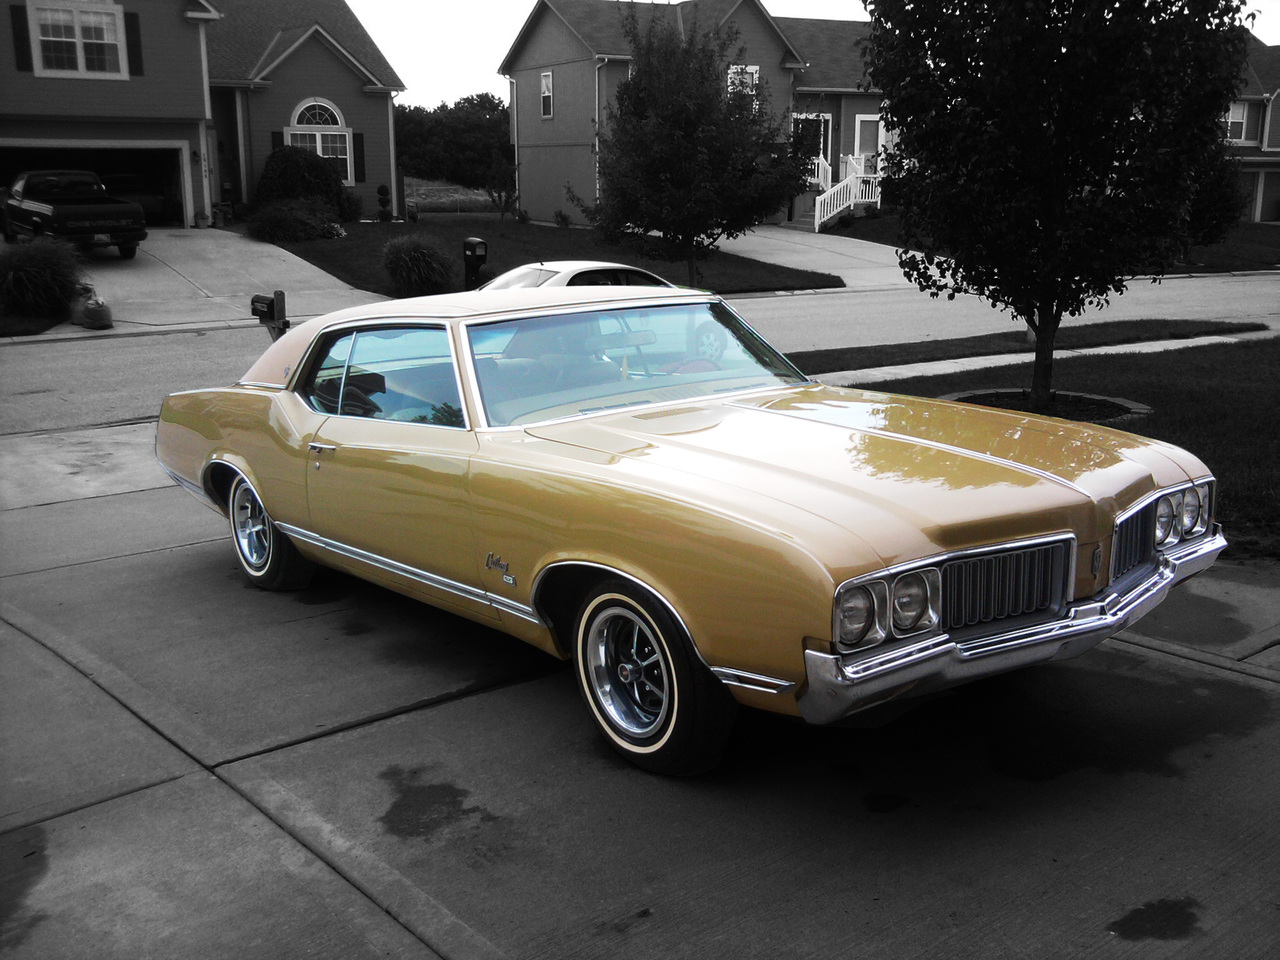 Gold 1970 Cutlass SX